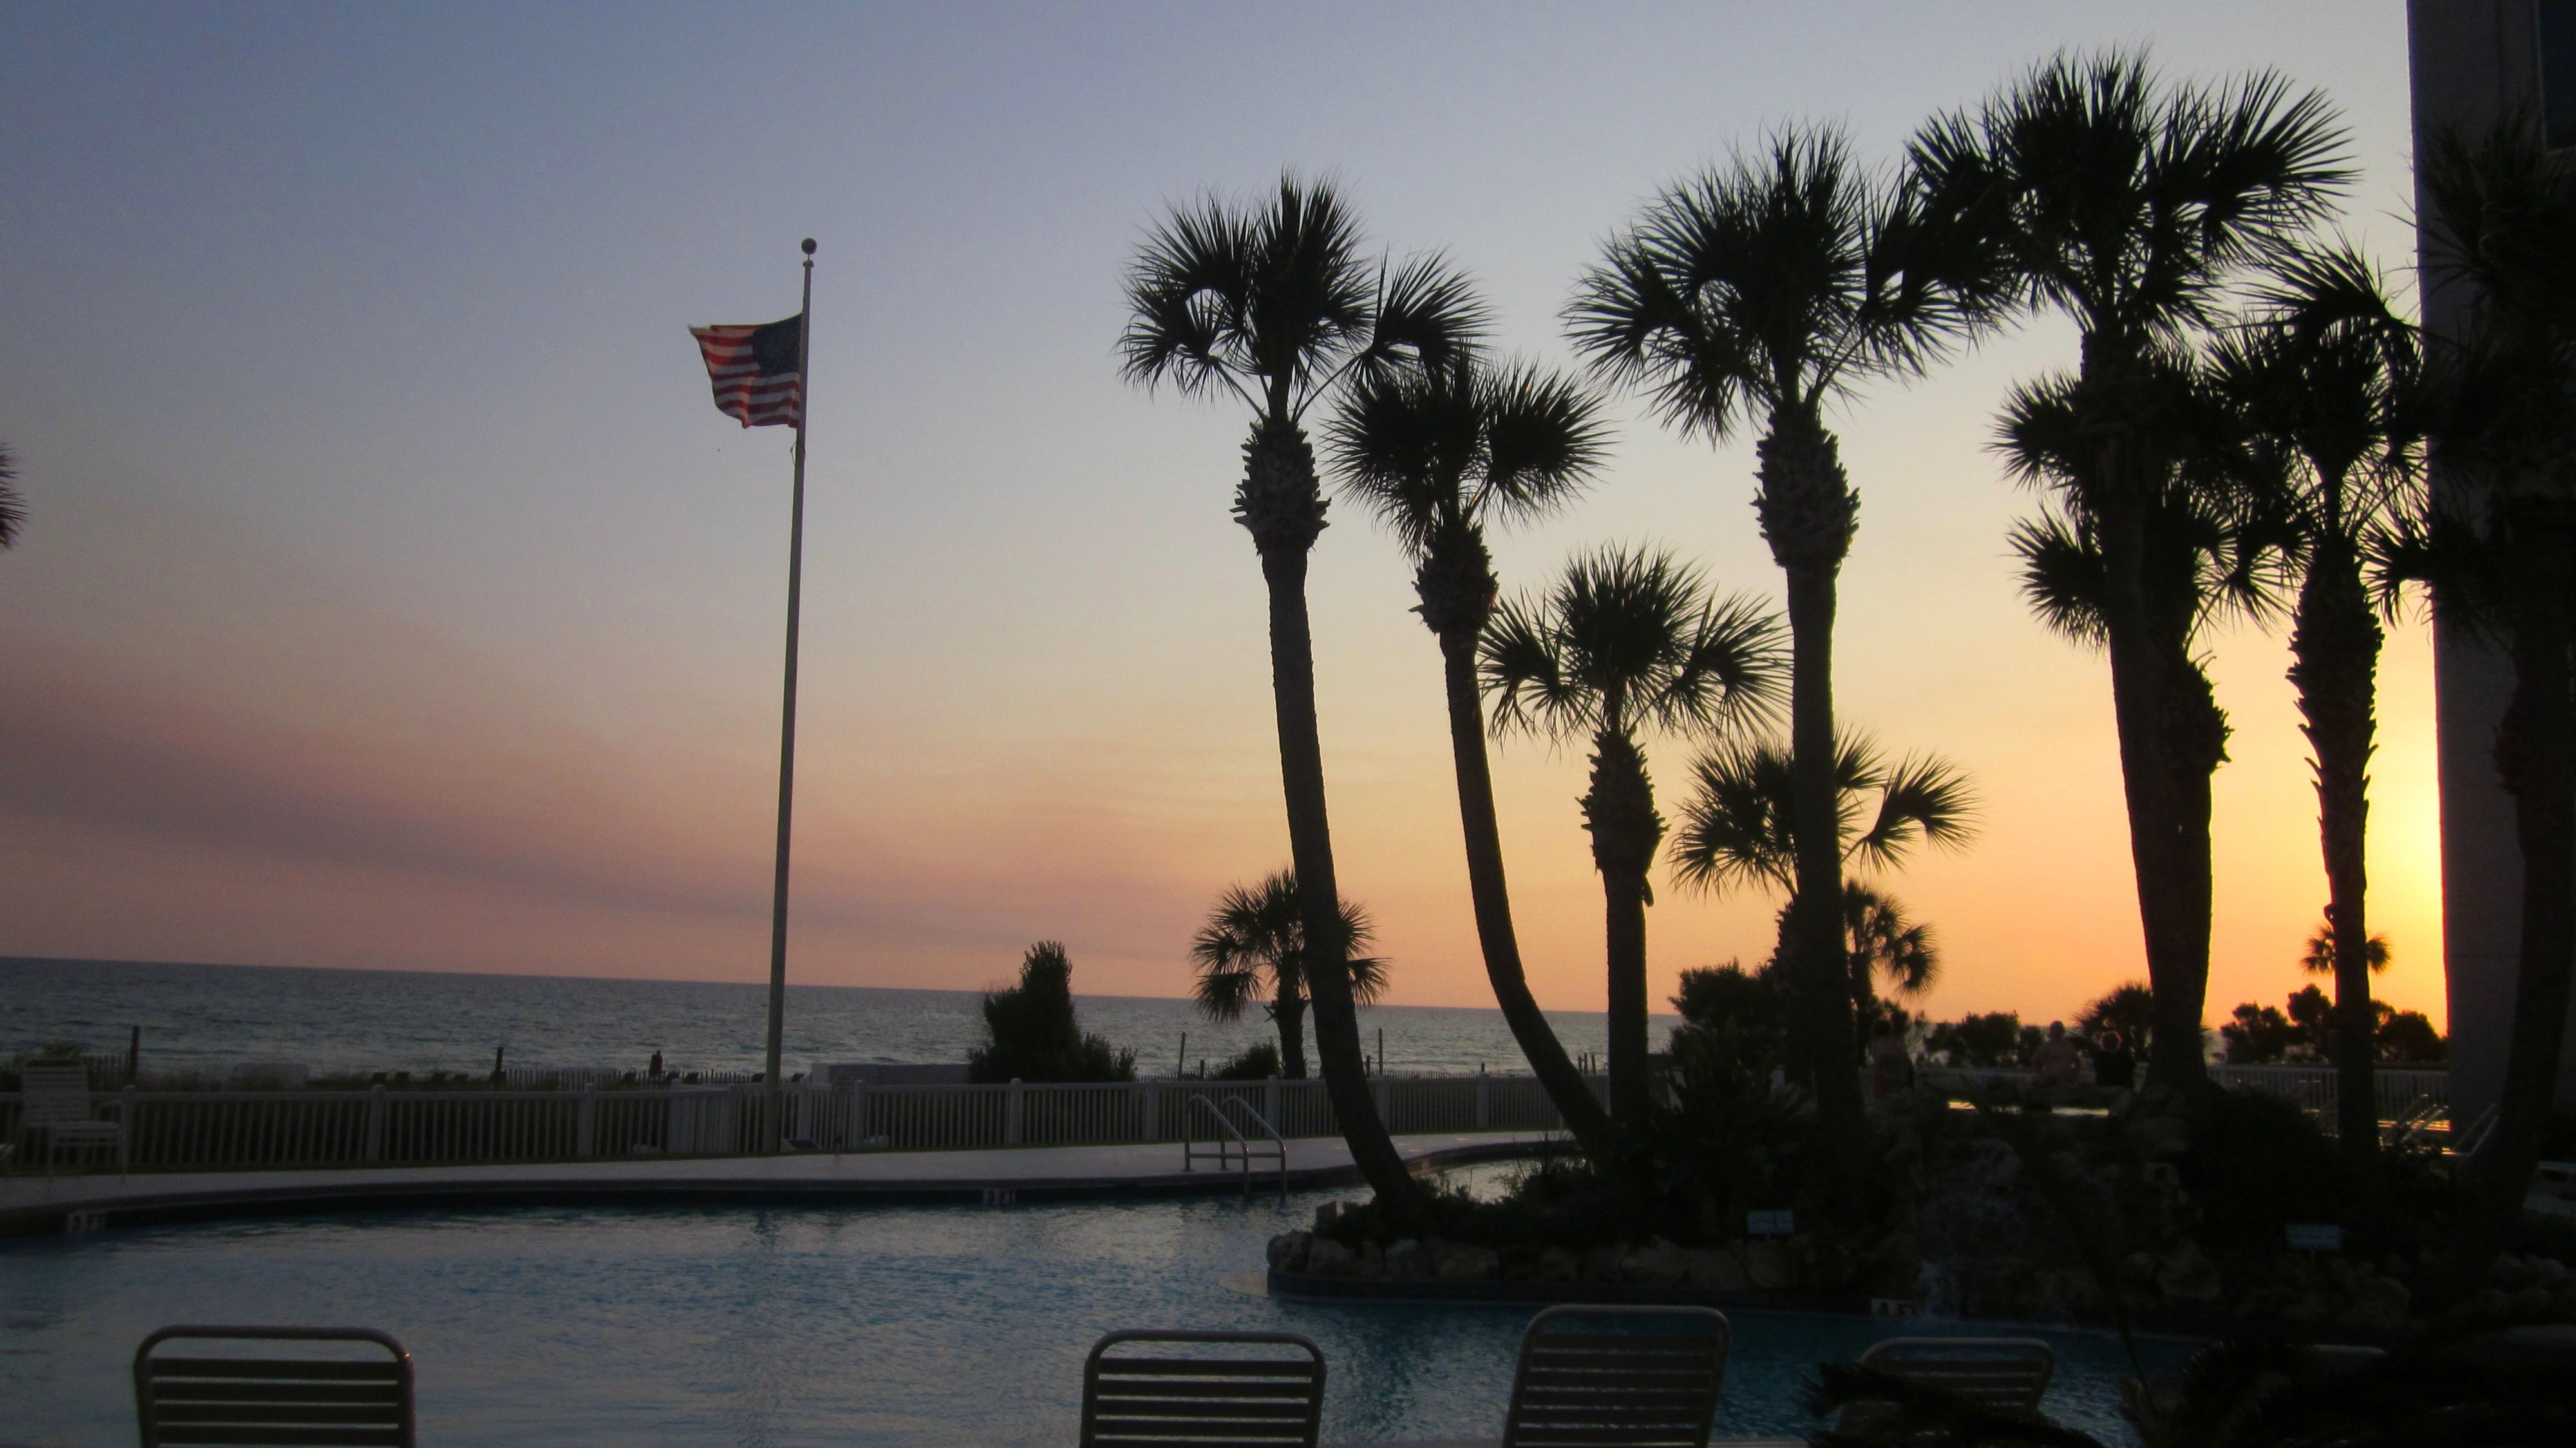 Best Beaches in the Panhandle of Florida